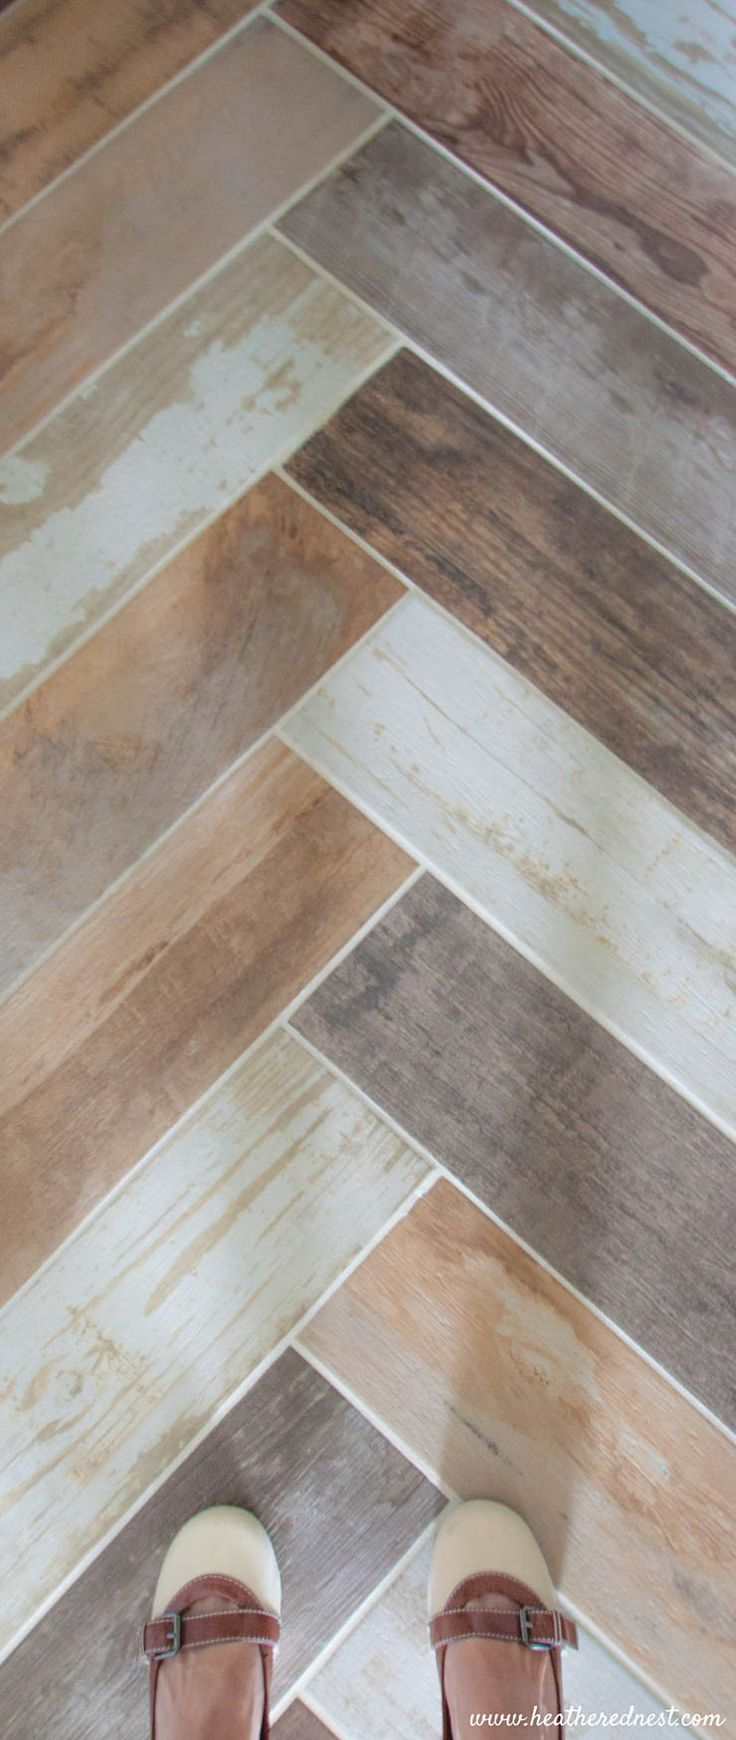 Best 25 Tile Floor Patterns Ideas On Pinterest: Best 25+ Faux Wood Tiles Ideas On Pinterest